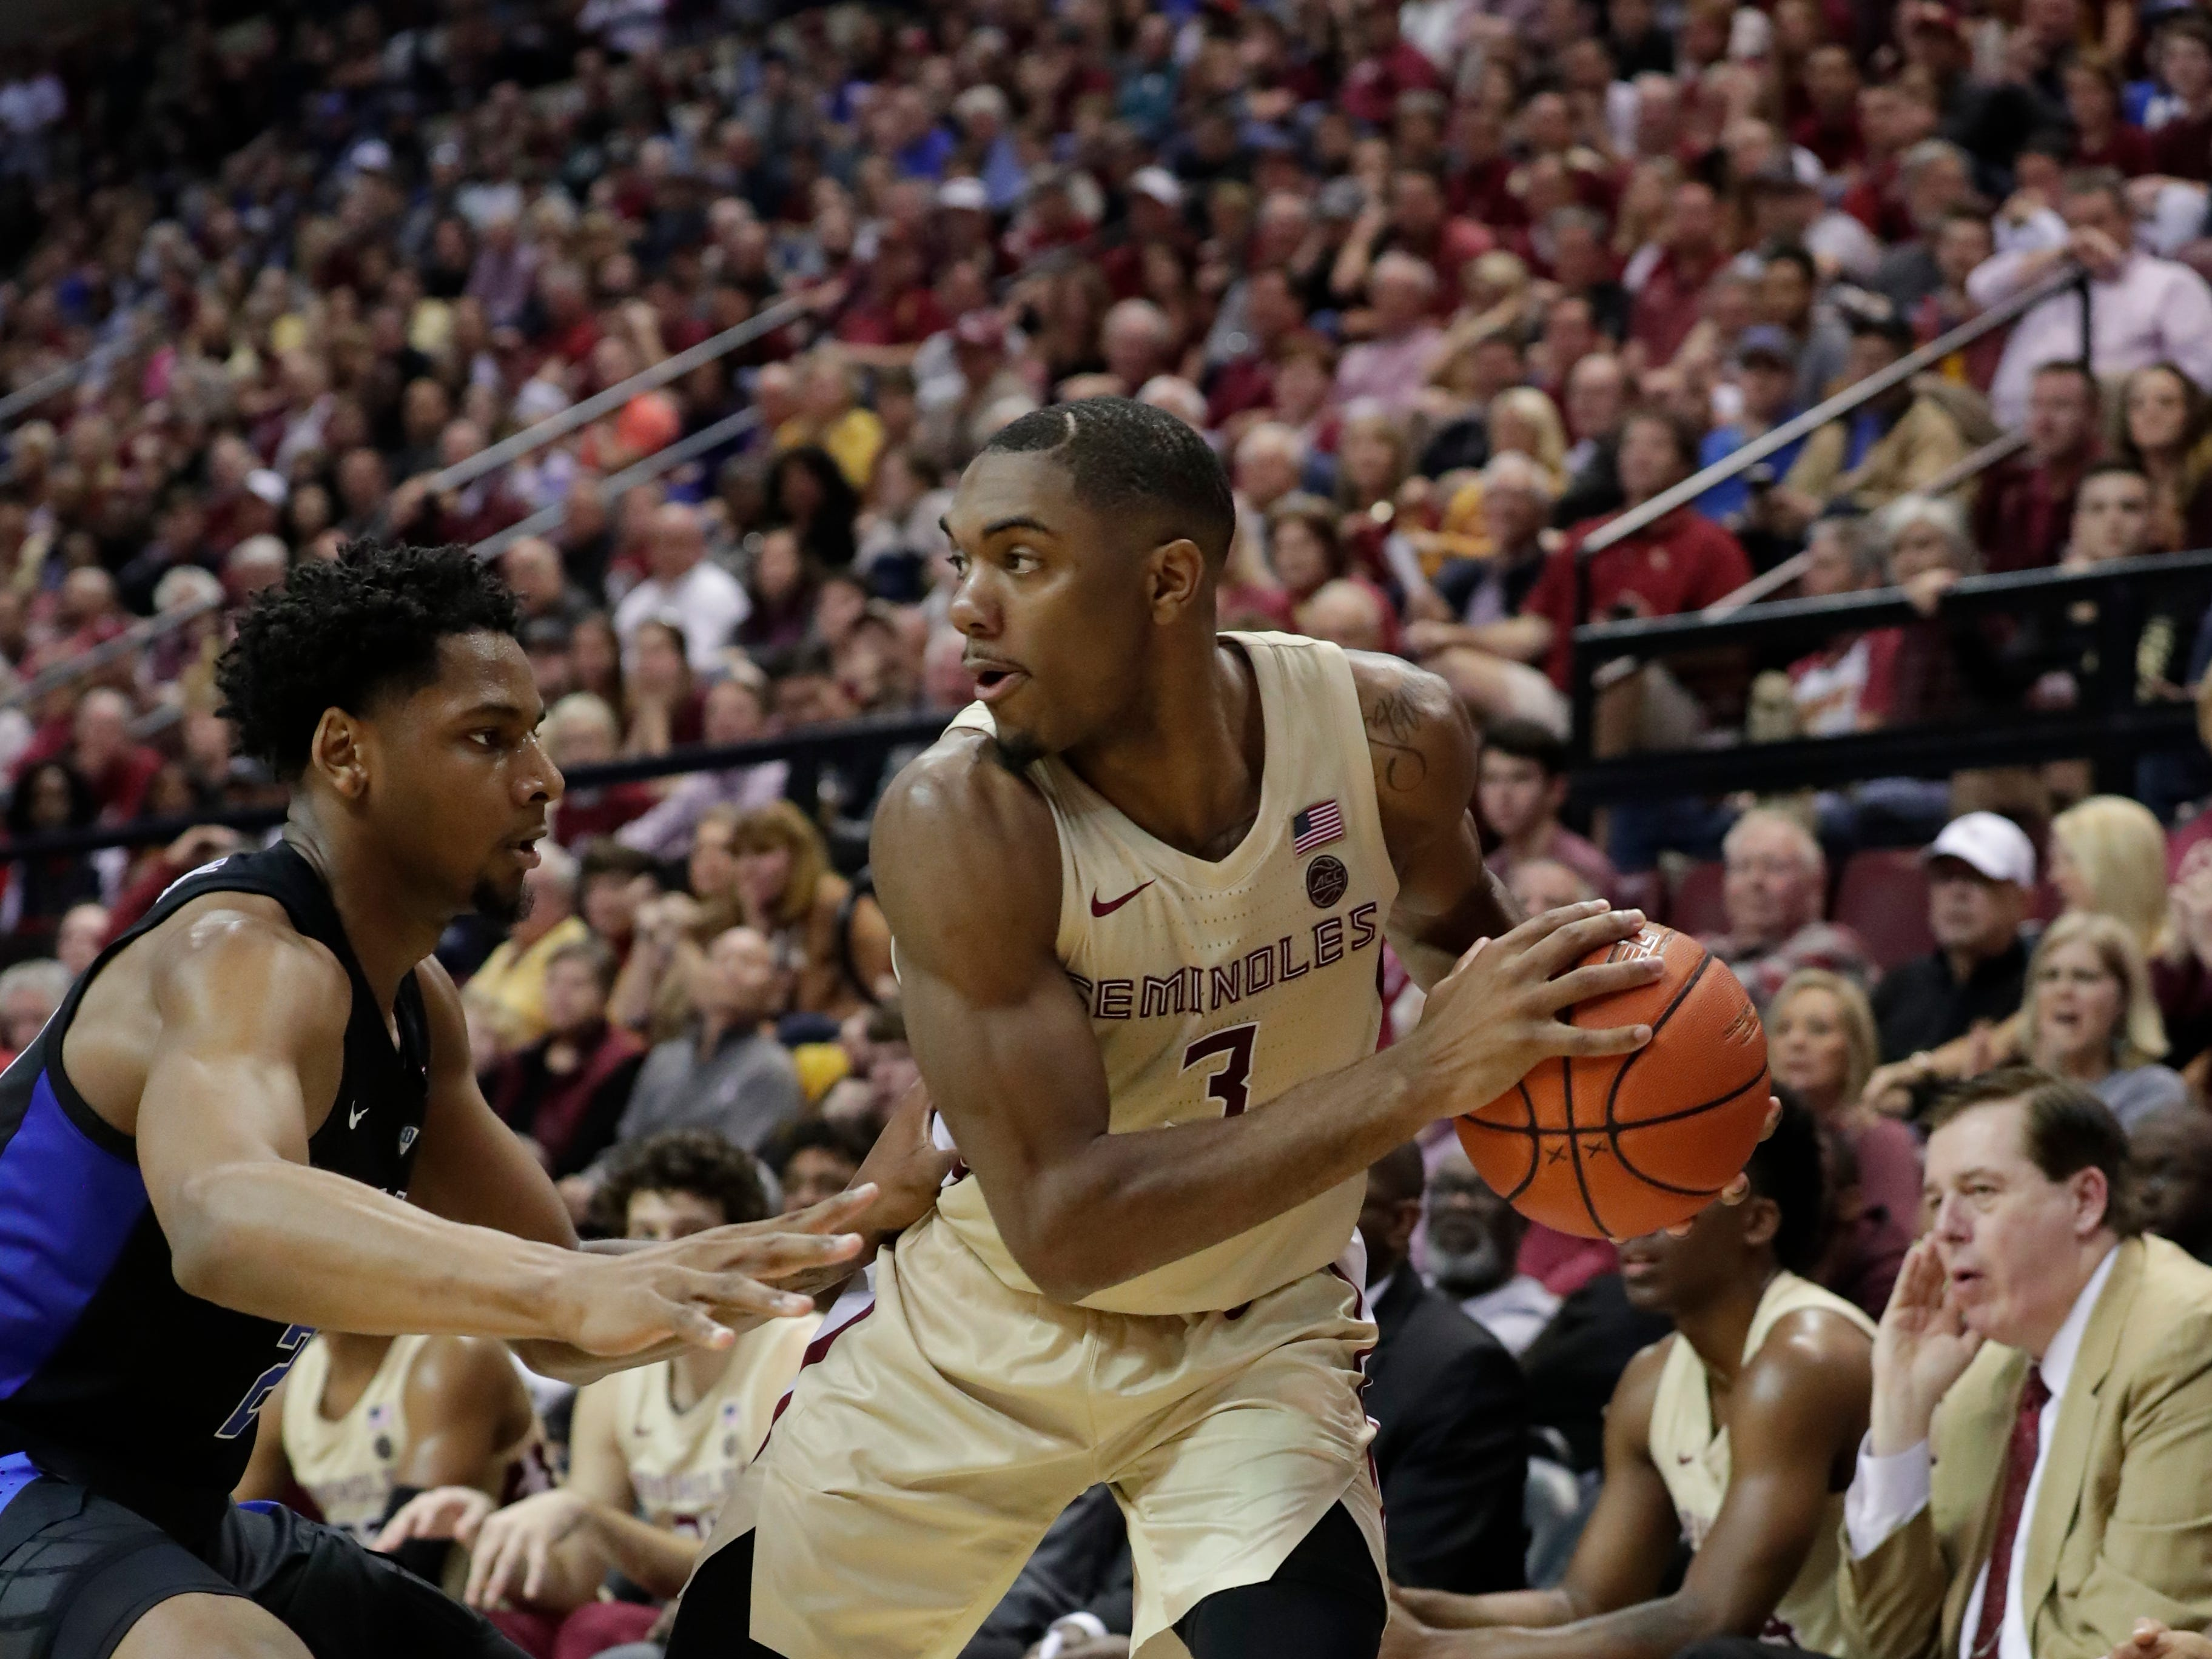 Florida State Seminoles guard Trent Forrest (3) keeps the ball away from his defender while looking to pass to a teammate. Ranked 13 in the ACC, the Florida State Seminoles host the number 1 team, the Duke Blue Devils, at the Tucker Civic Center, Saturday, Jan. 12, 2019.